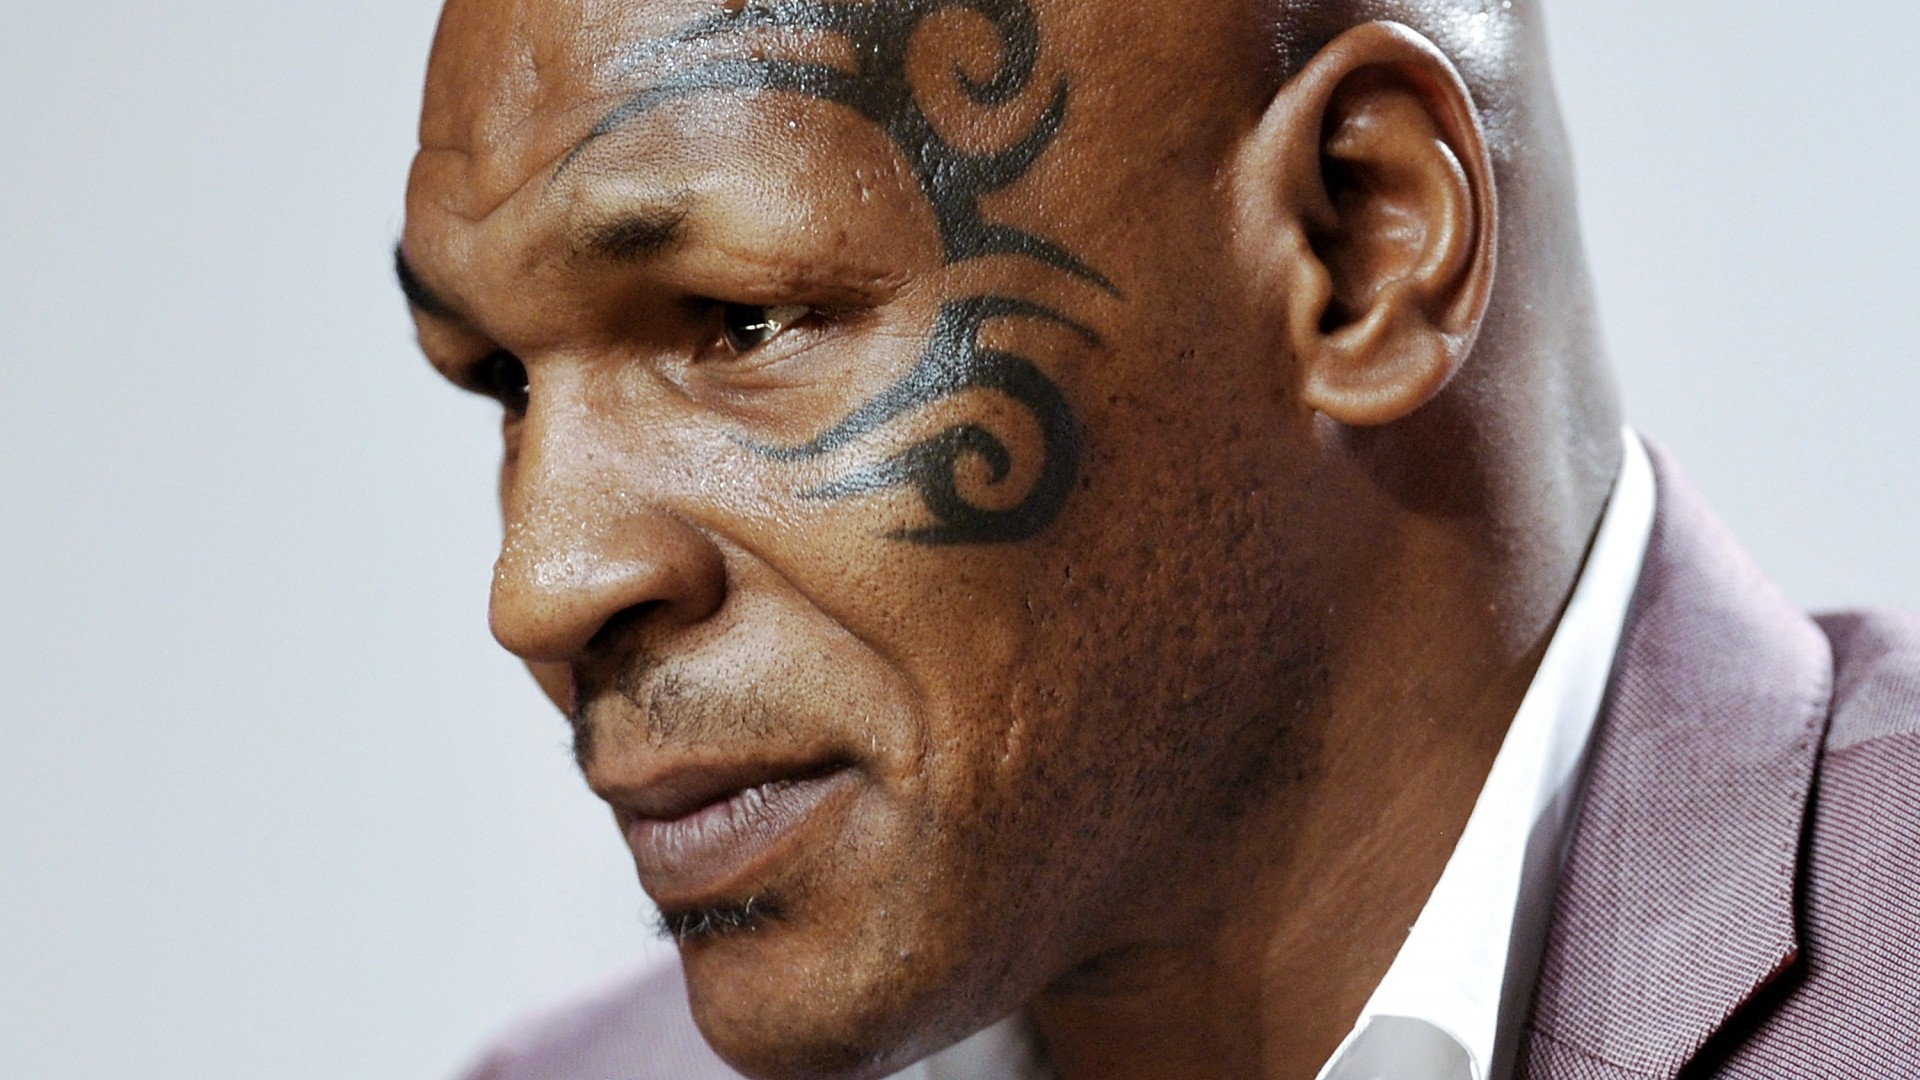 1920x1080  Wallpaper mike tyson, boxer, face, tattoo